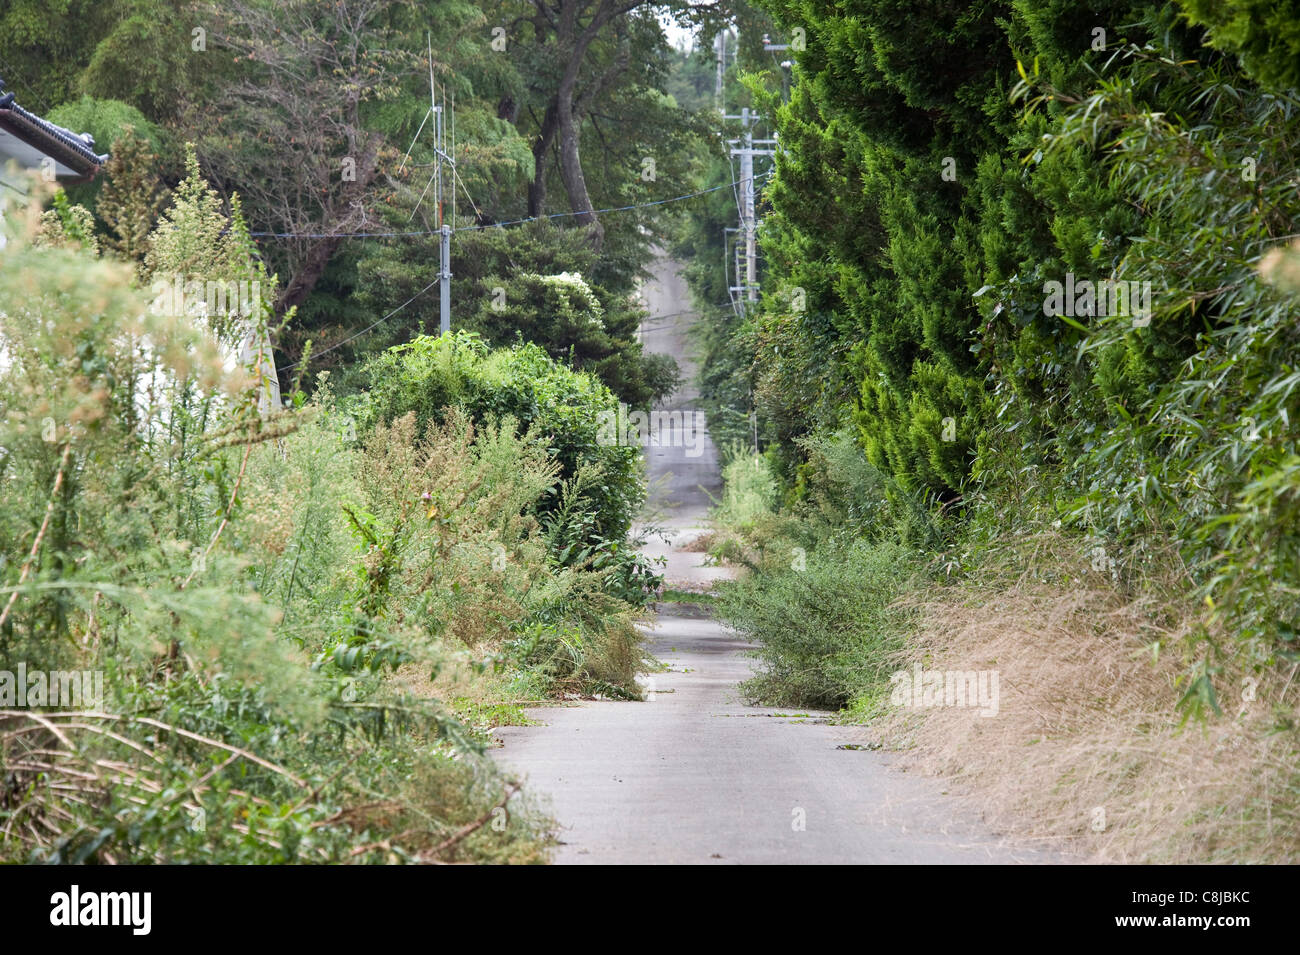 Plants and trees have begun to reclaim the roads of communities inside the nuclear exclusion zone, Okuma, Fukushima - Stock Image